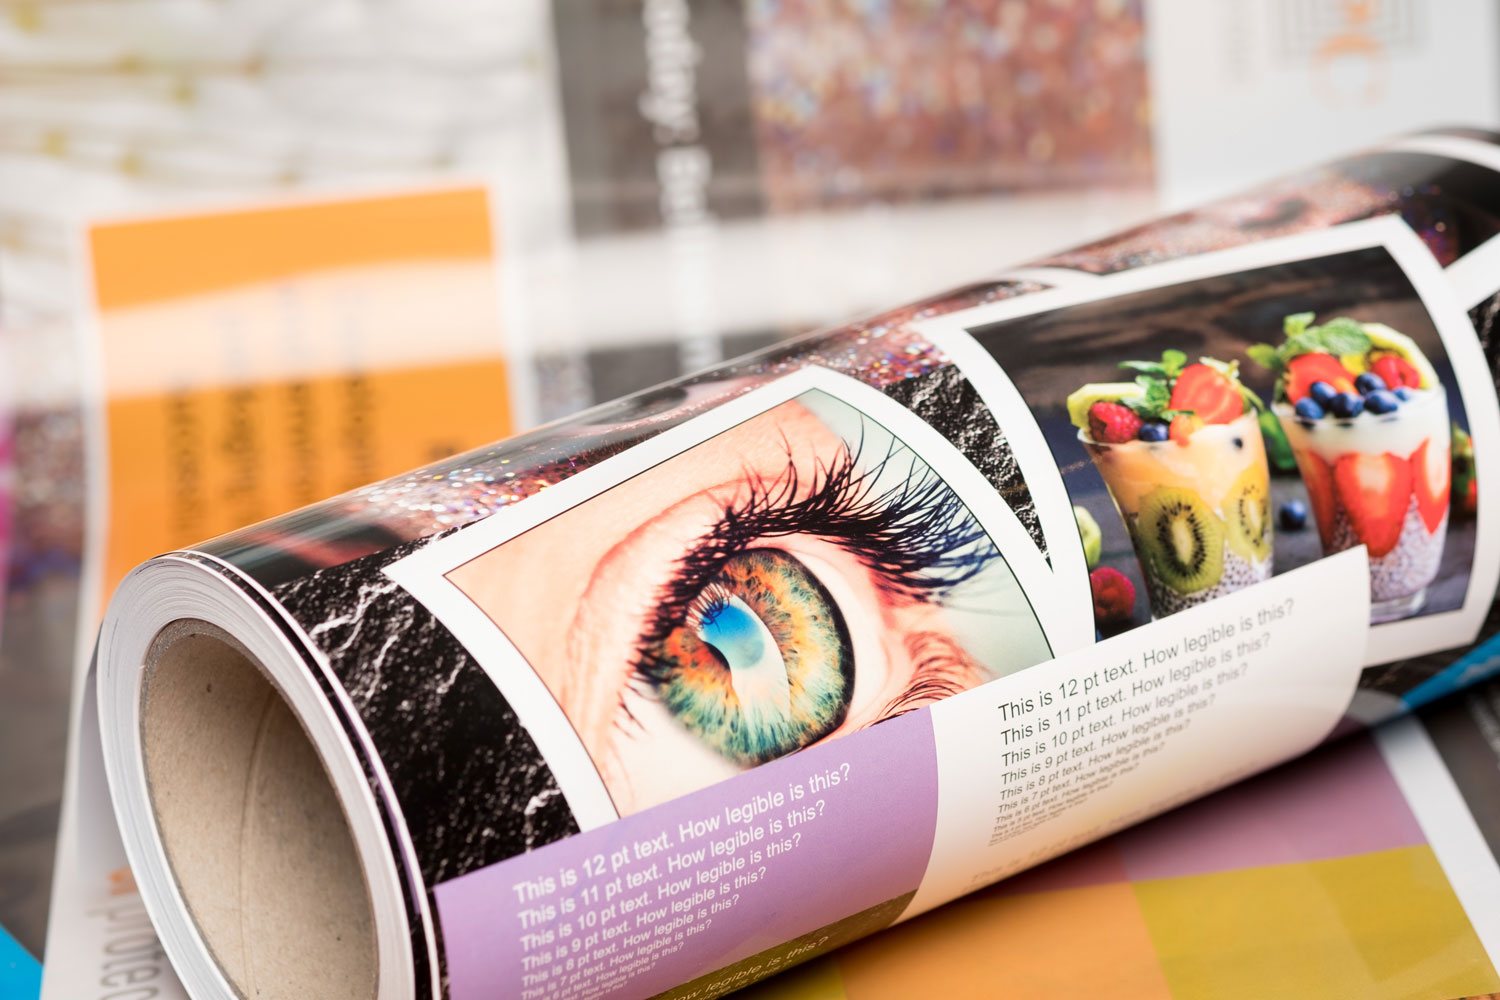 Bellissima DMS high-quality flexo screening technology